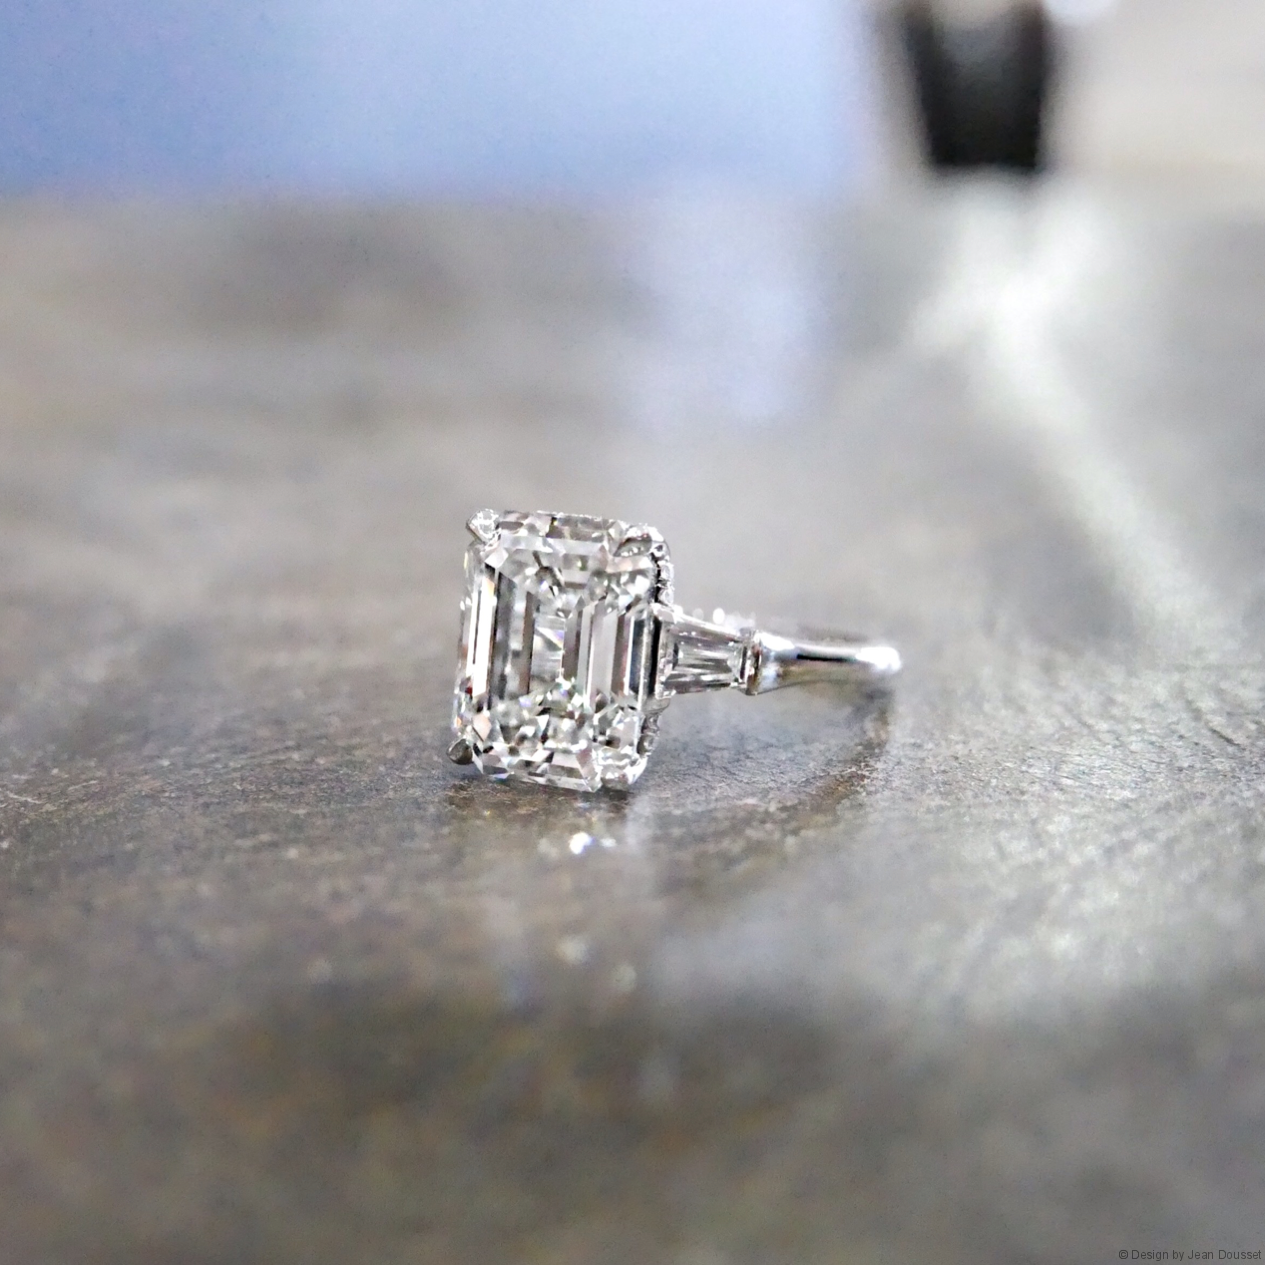 Pin On Engagement Rings I Like